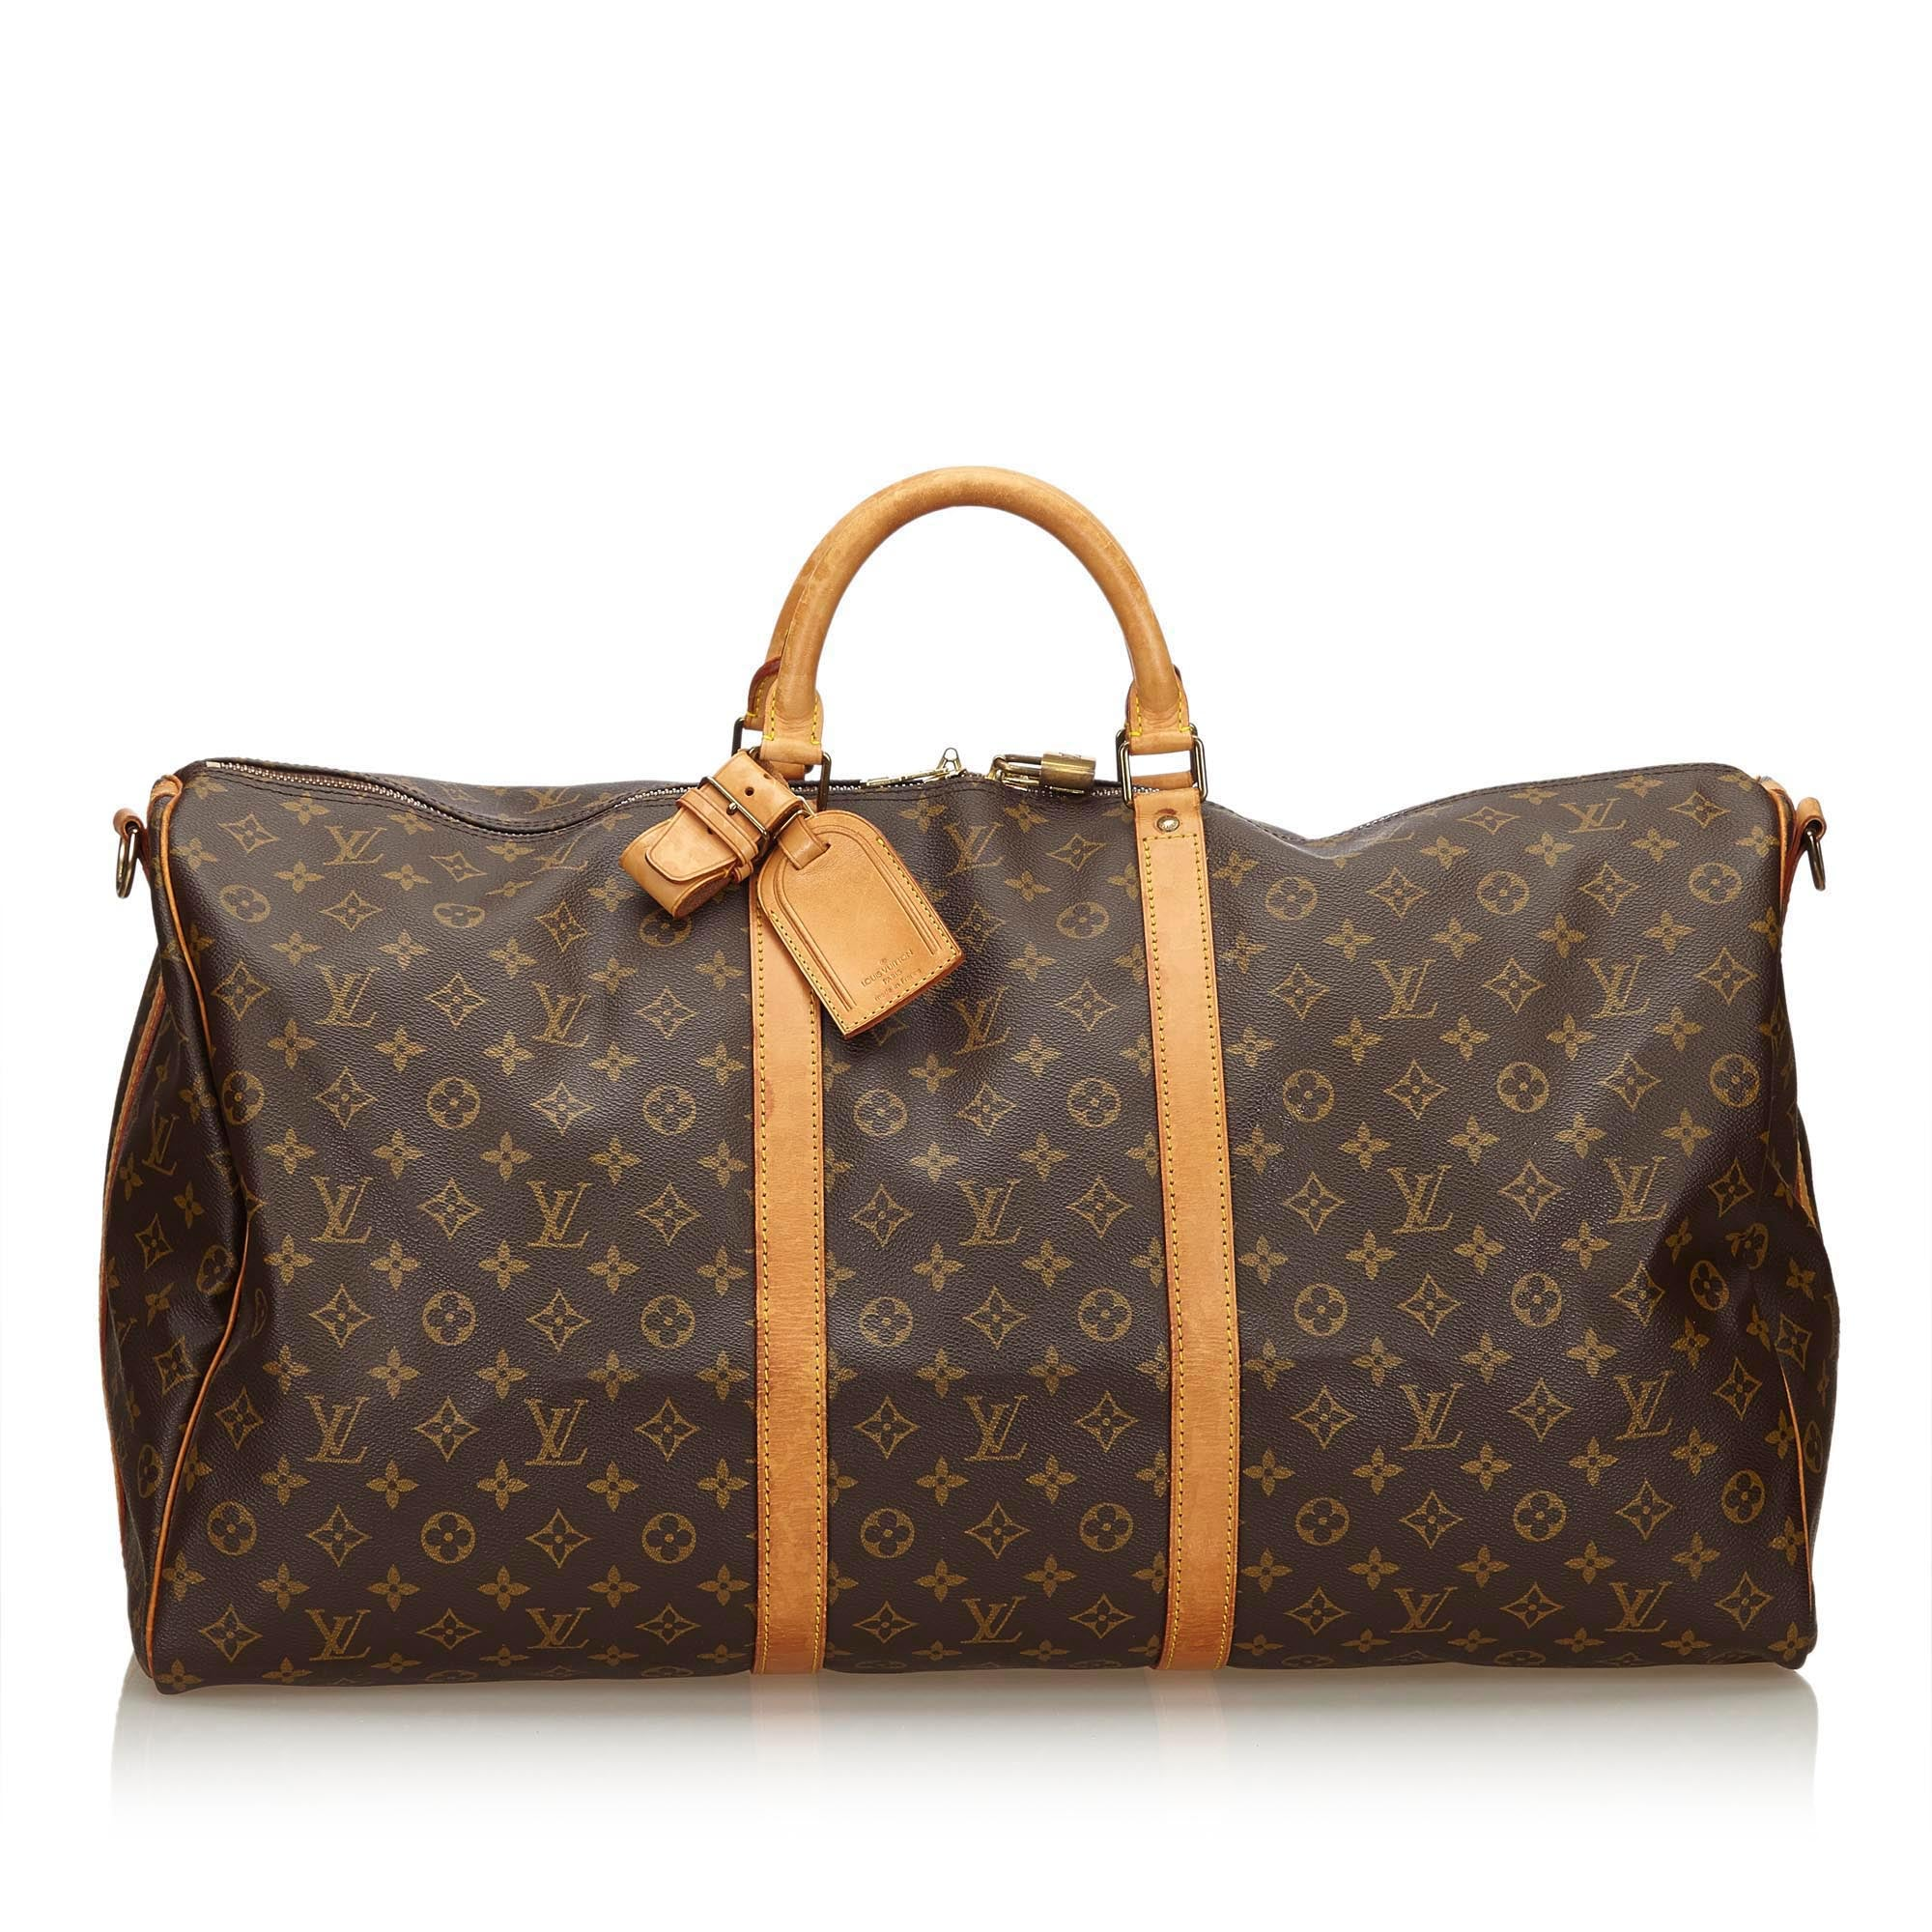 6bdc7f181027 LOUIS VUITTON MONOGRAM KEEPALL BANDOULIERE 60 TRAVEL BAG Shop online the  best value on authentic designer ...